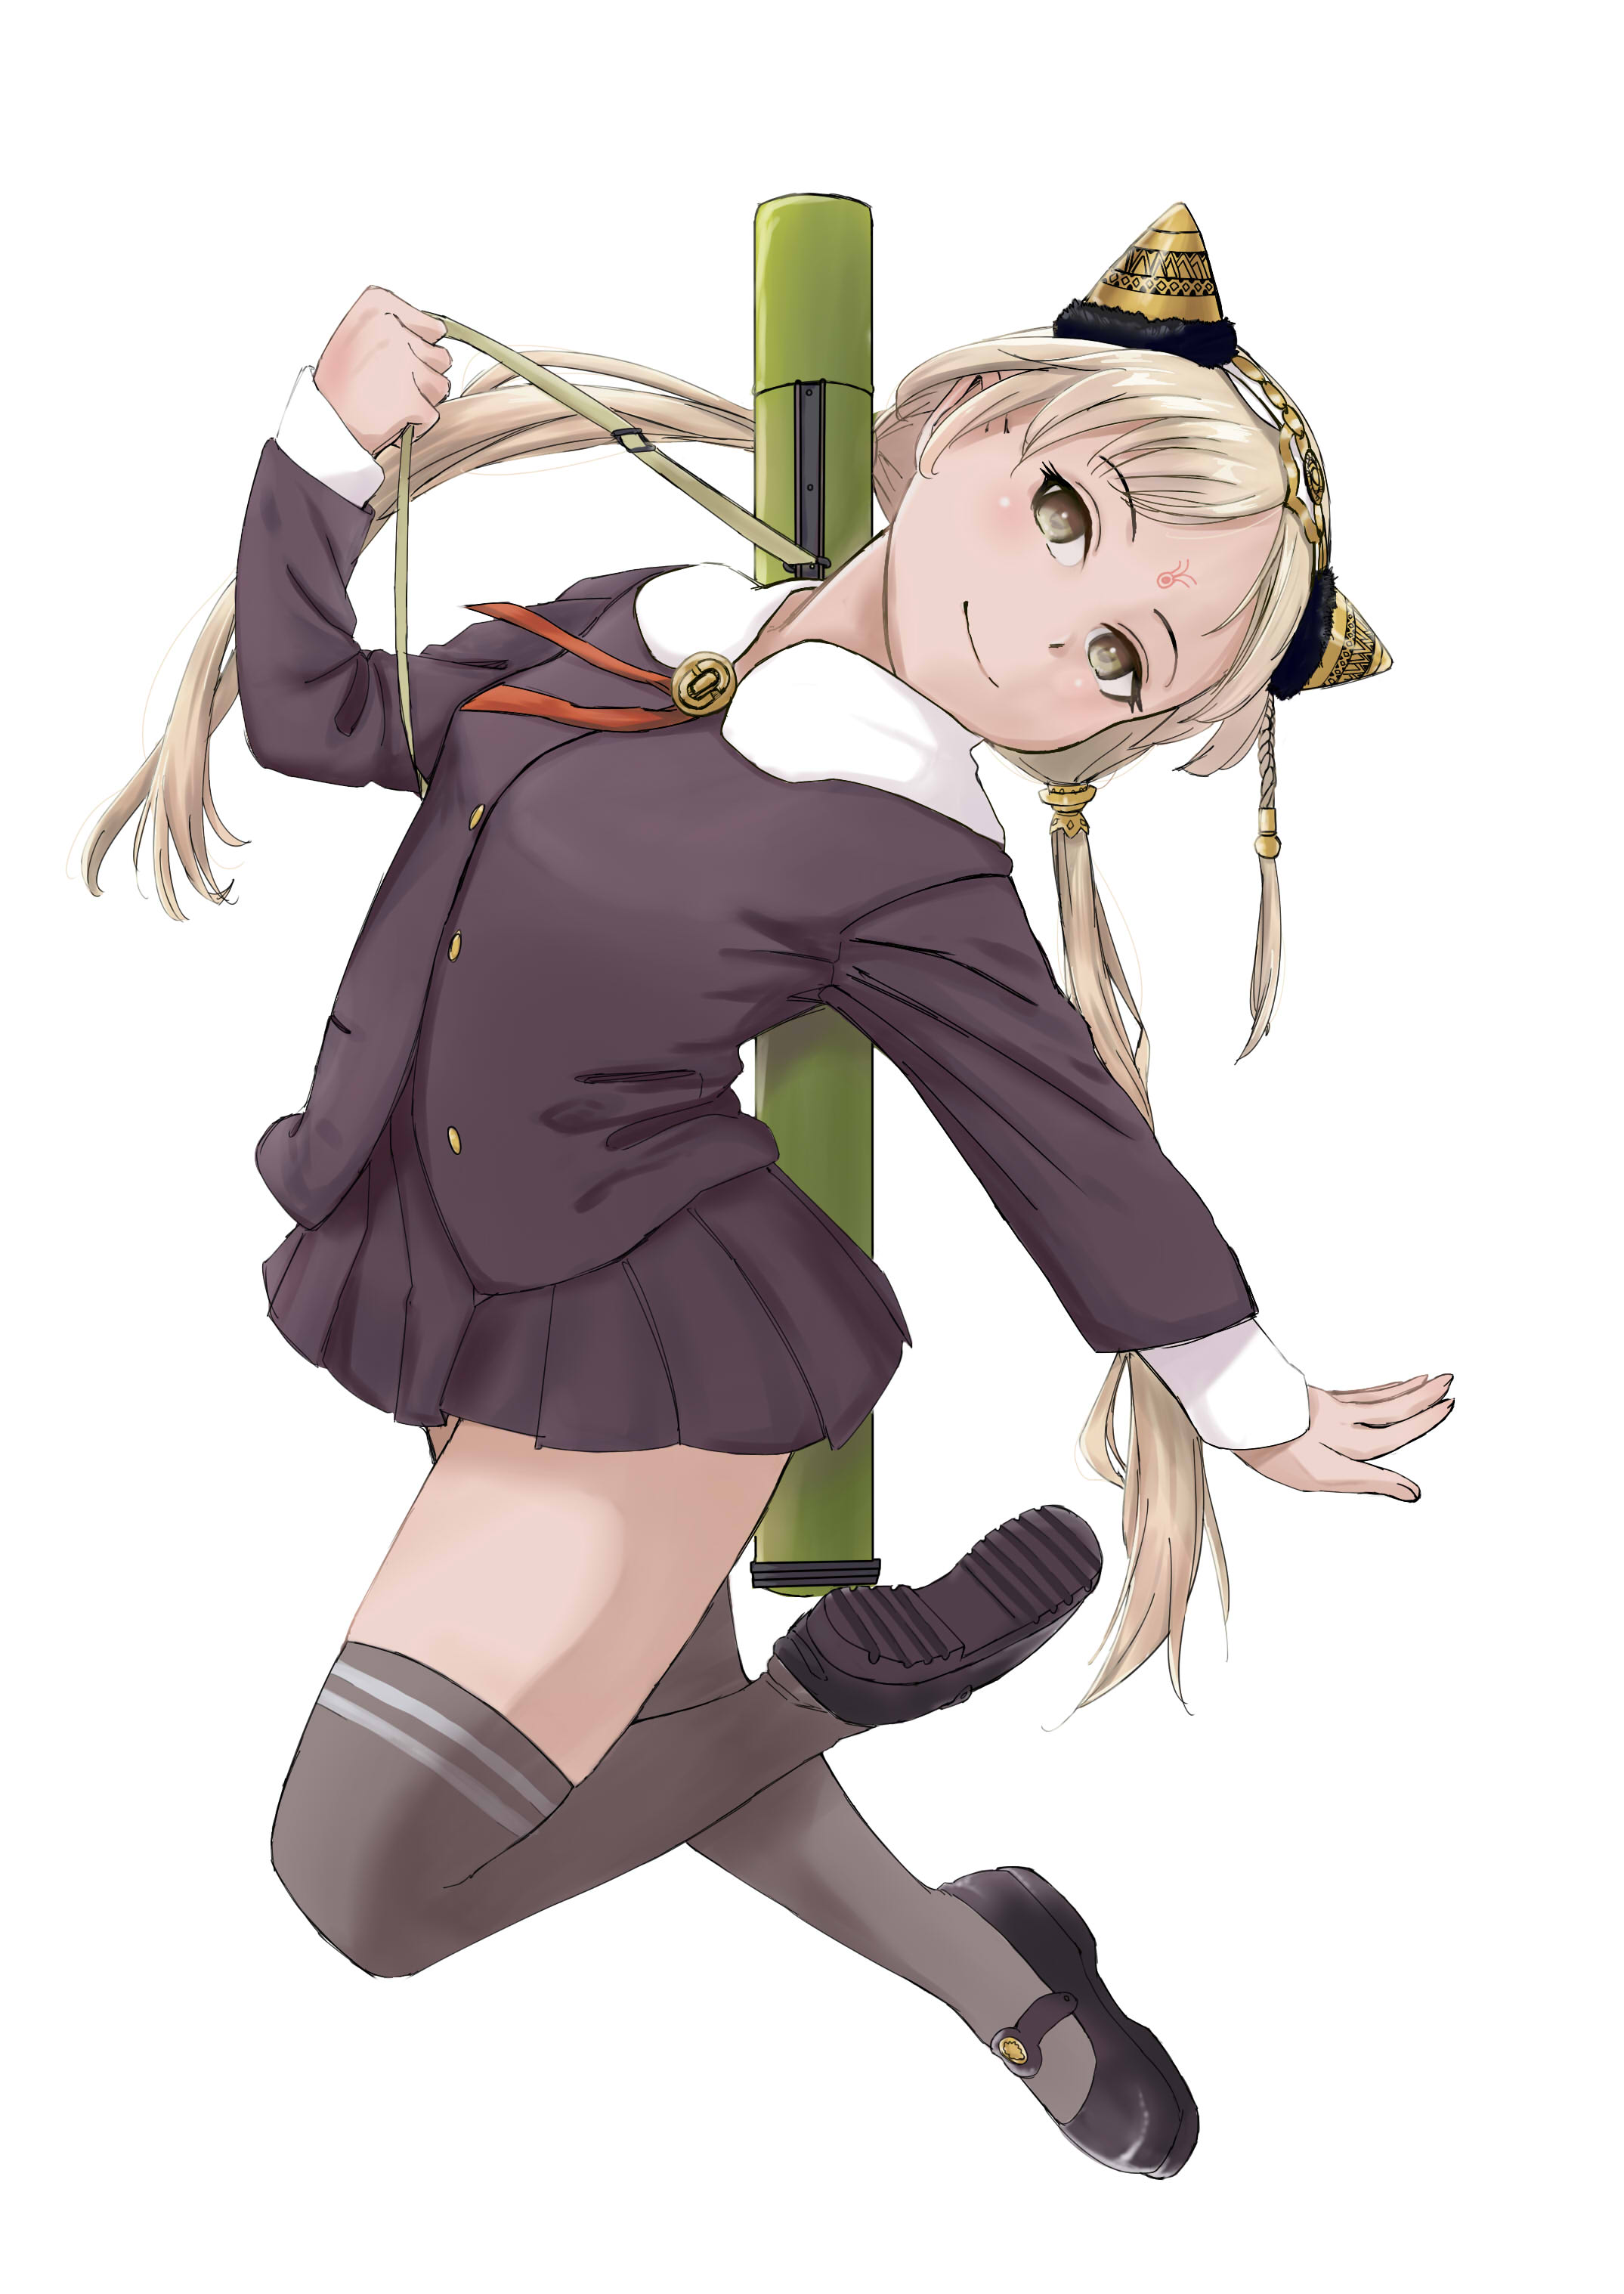 Cop Craft Dragnet Mirage Reloaded Zerochan Anime Image Board